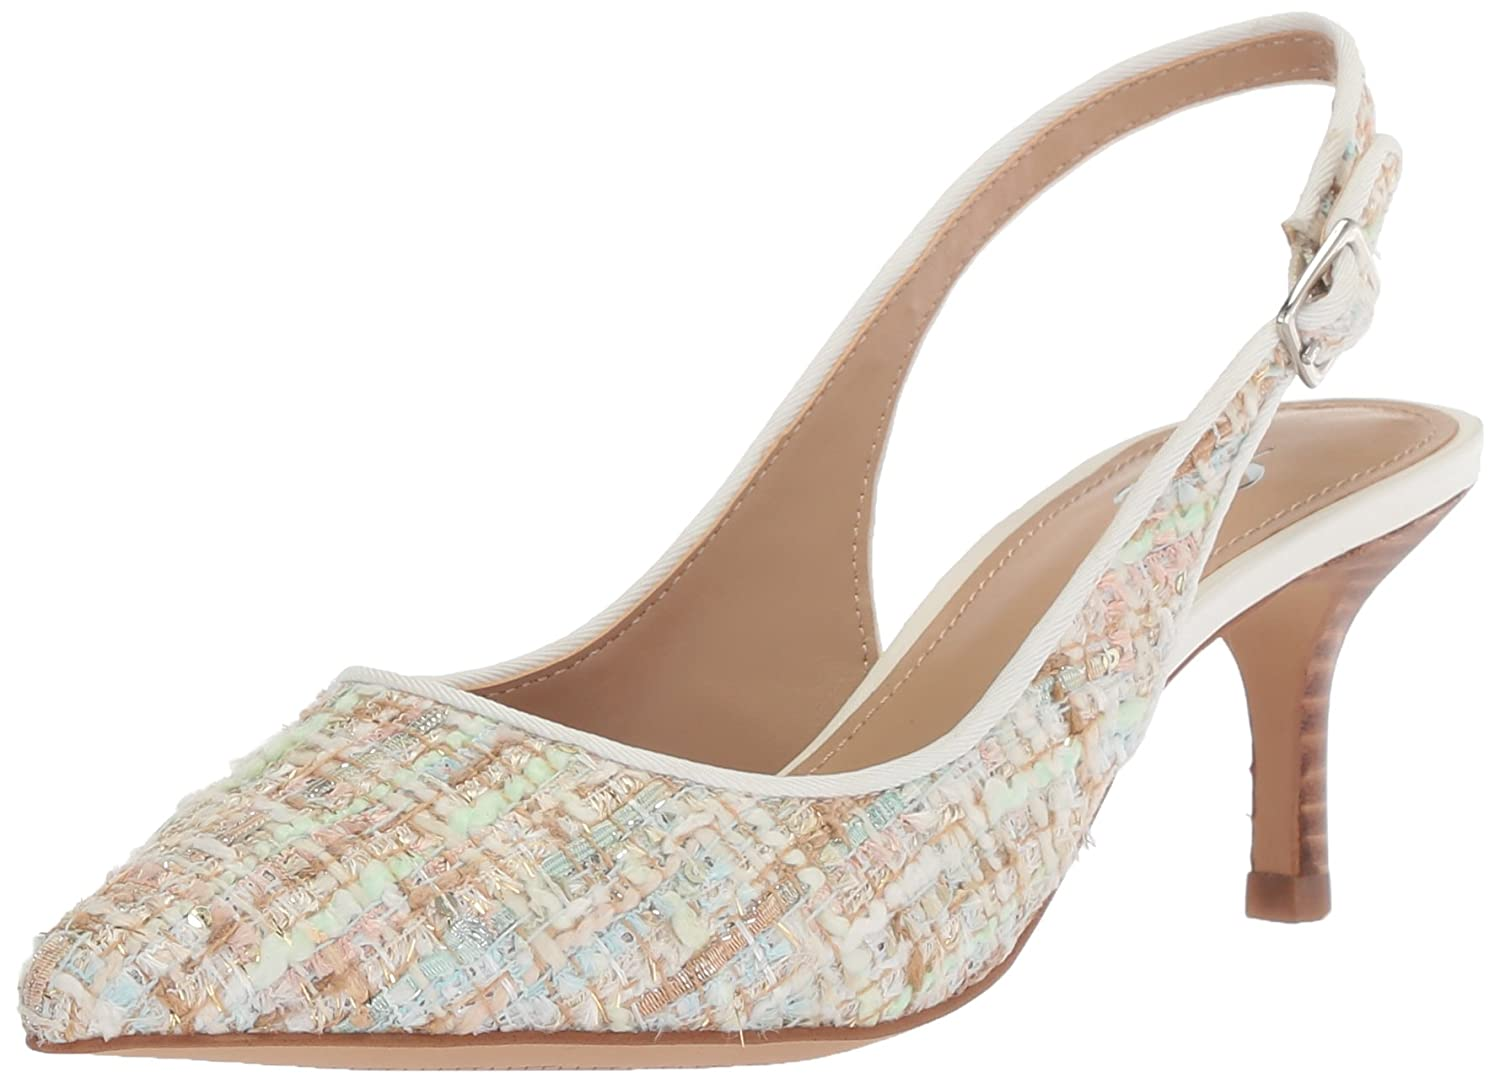 The Fix Women's Felicia Slingback Kitten Heel Pump B078FHBDHK 10 B(M) US|Bright White/Multi Tweed